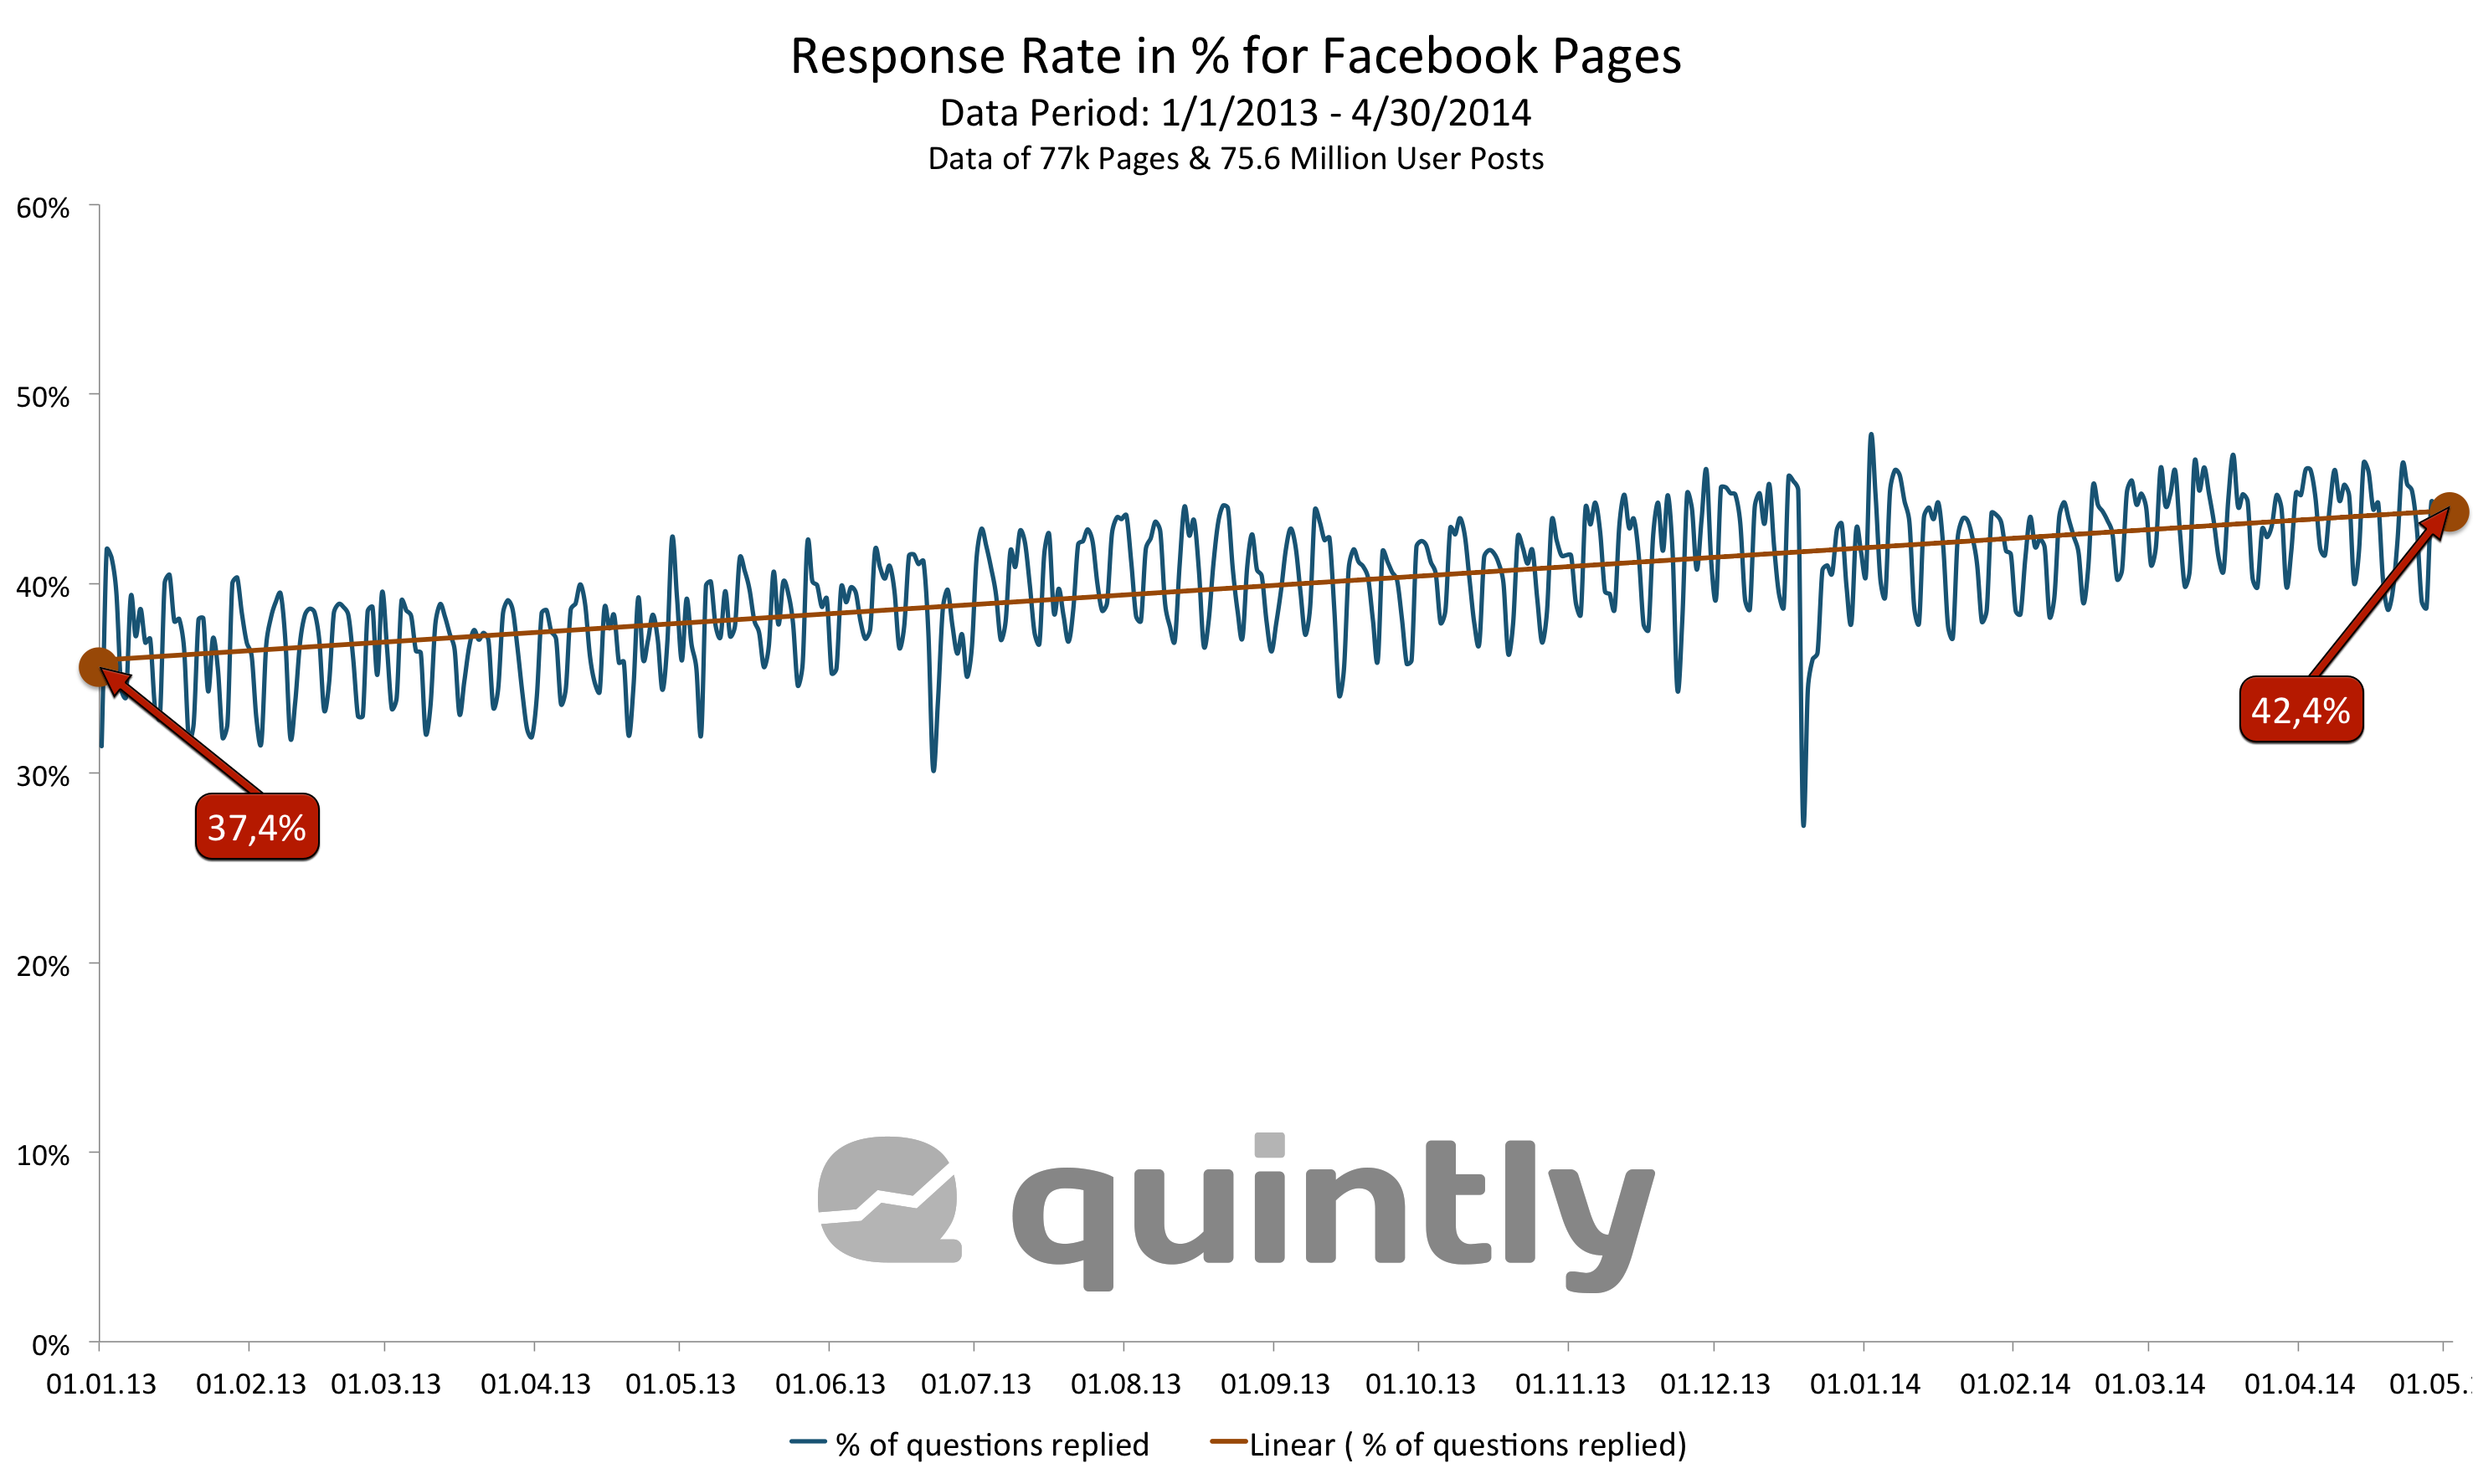 quintly_Total_Facebook_Response_Rate